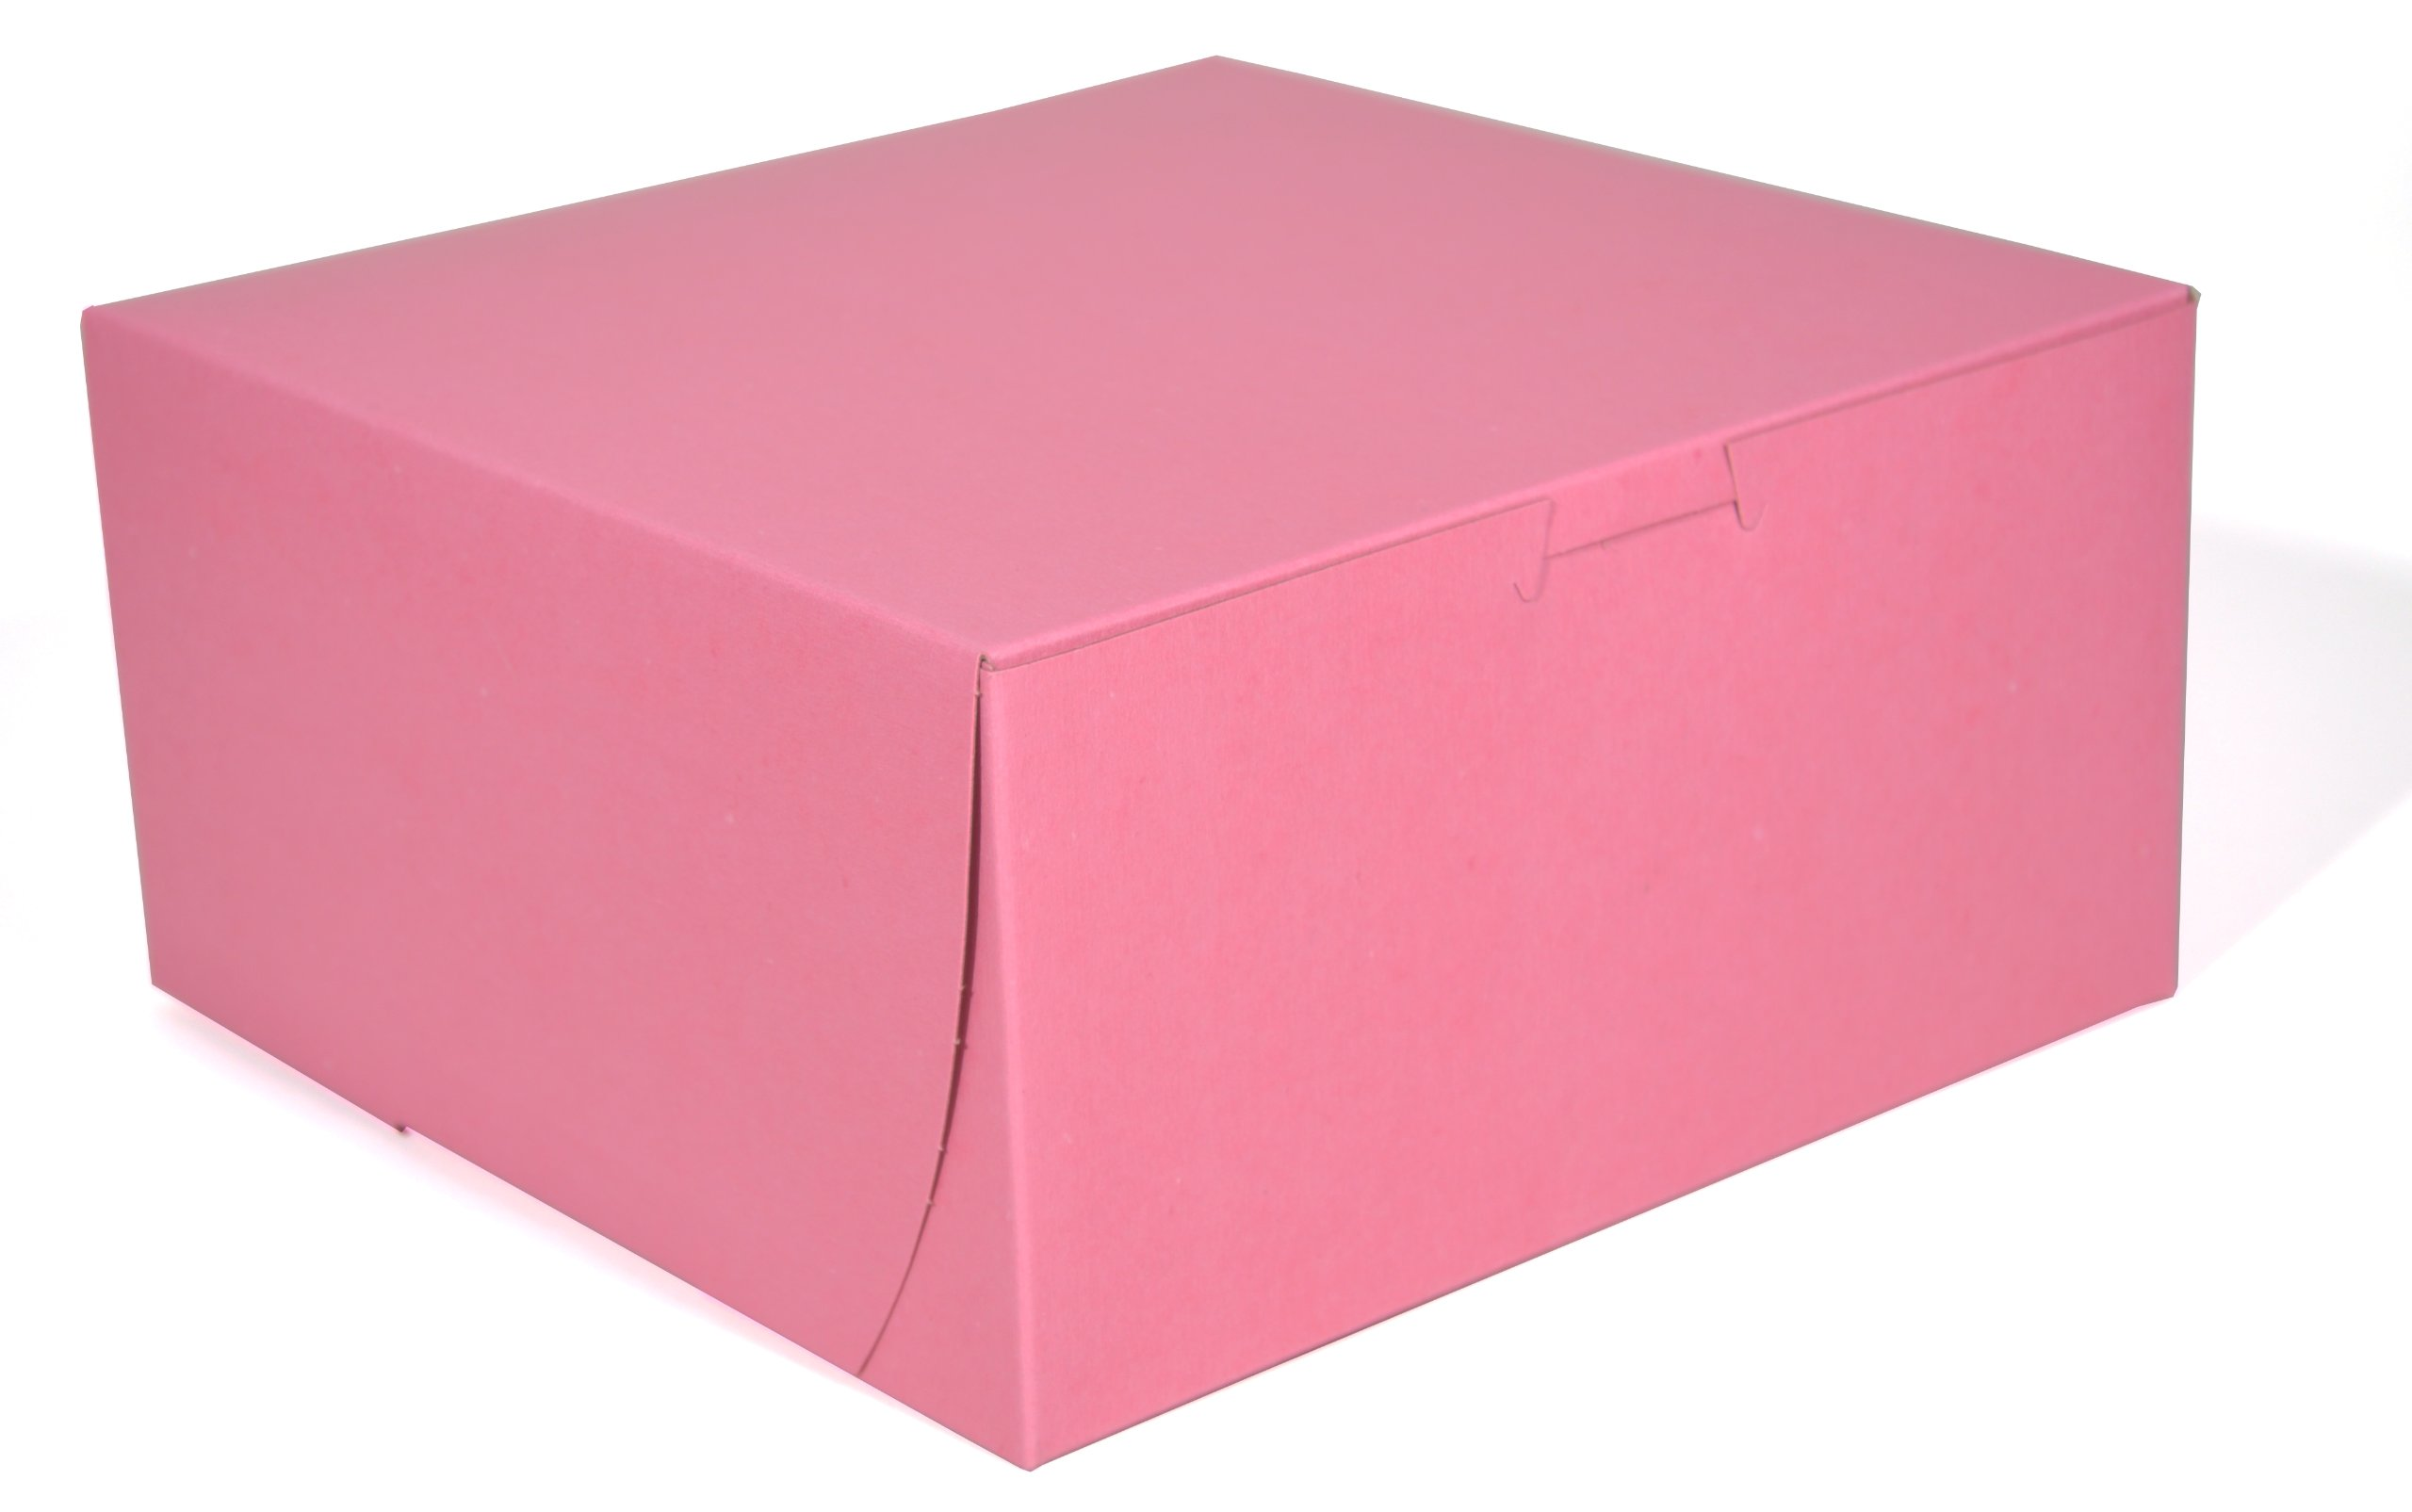 Southern Champion Tray 0841 Pink Paperboard Non-Window Lock-Corner Bakery Box, 8'' Length x 8'' Width x 4'' Height (Case of 250)